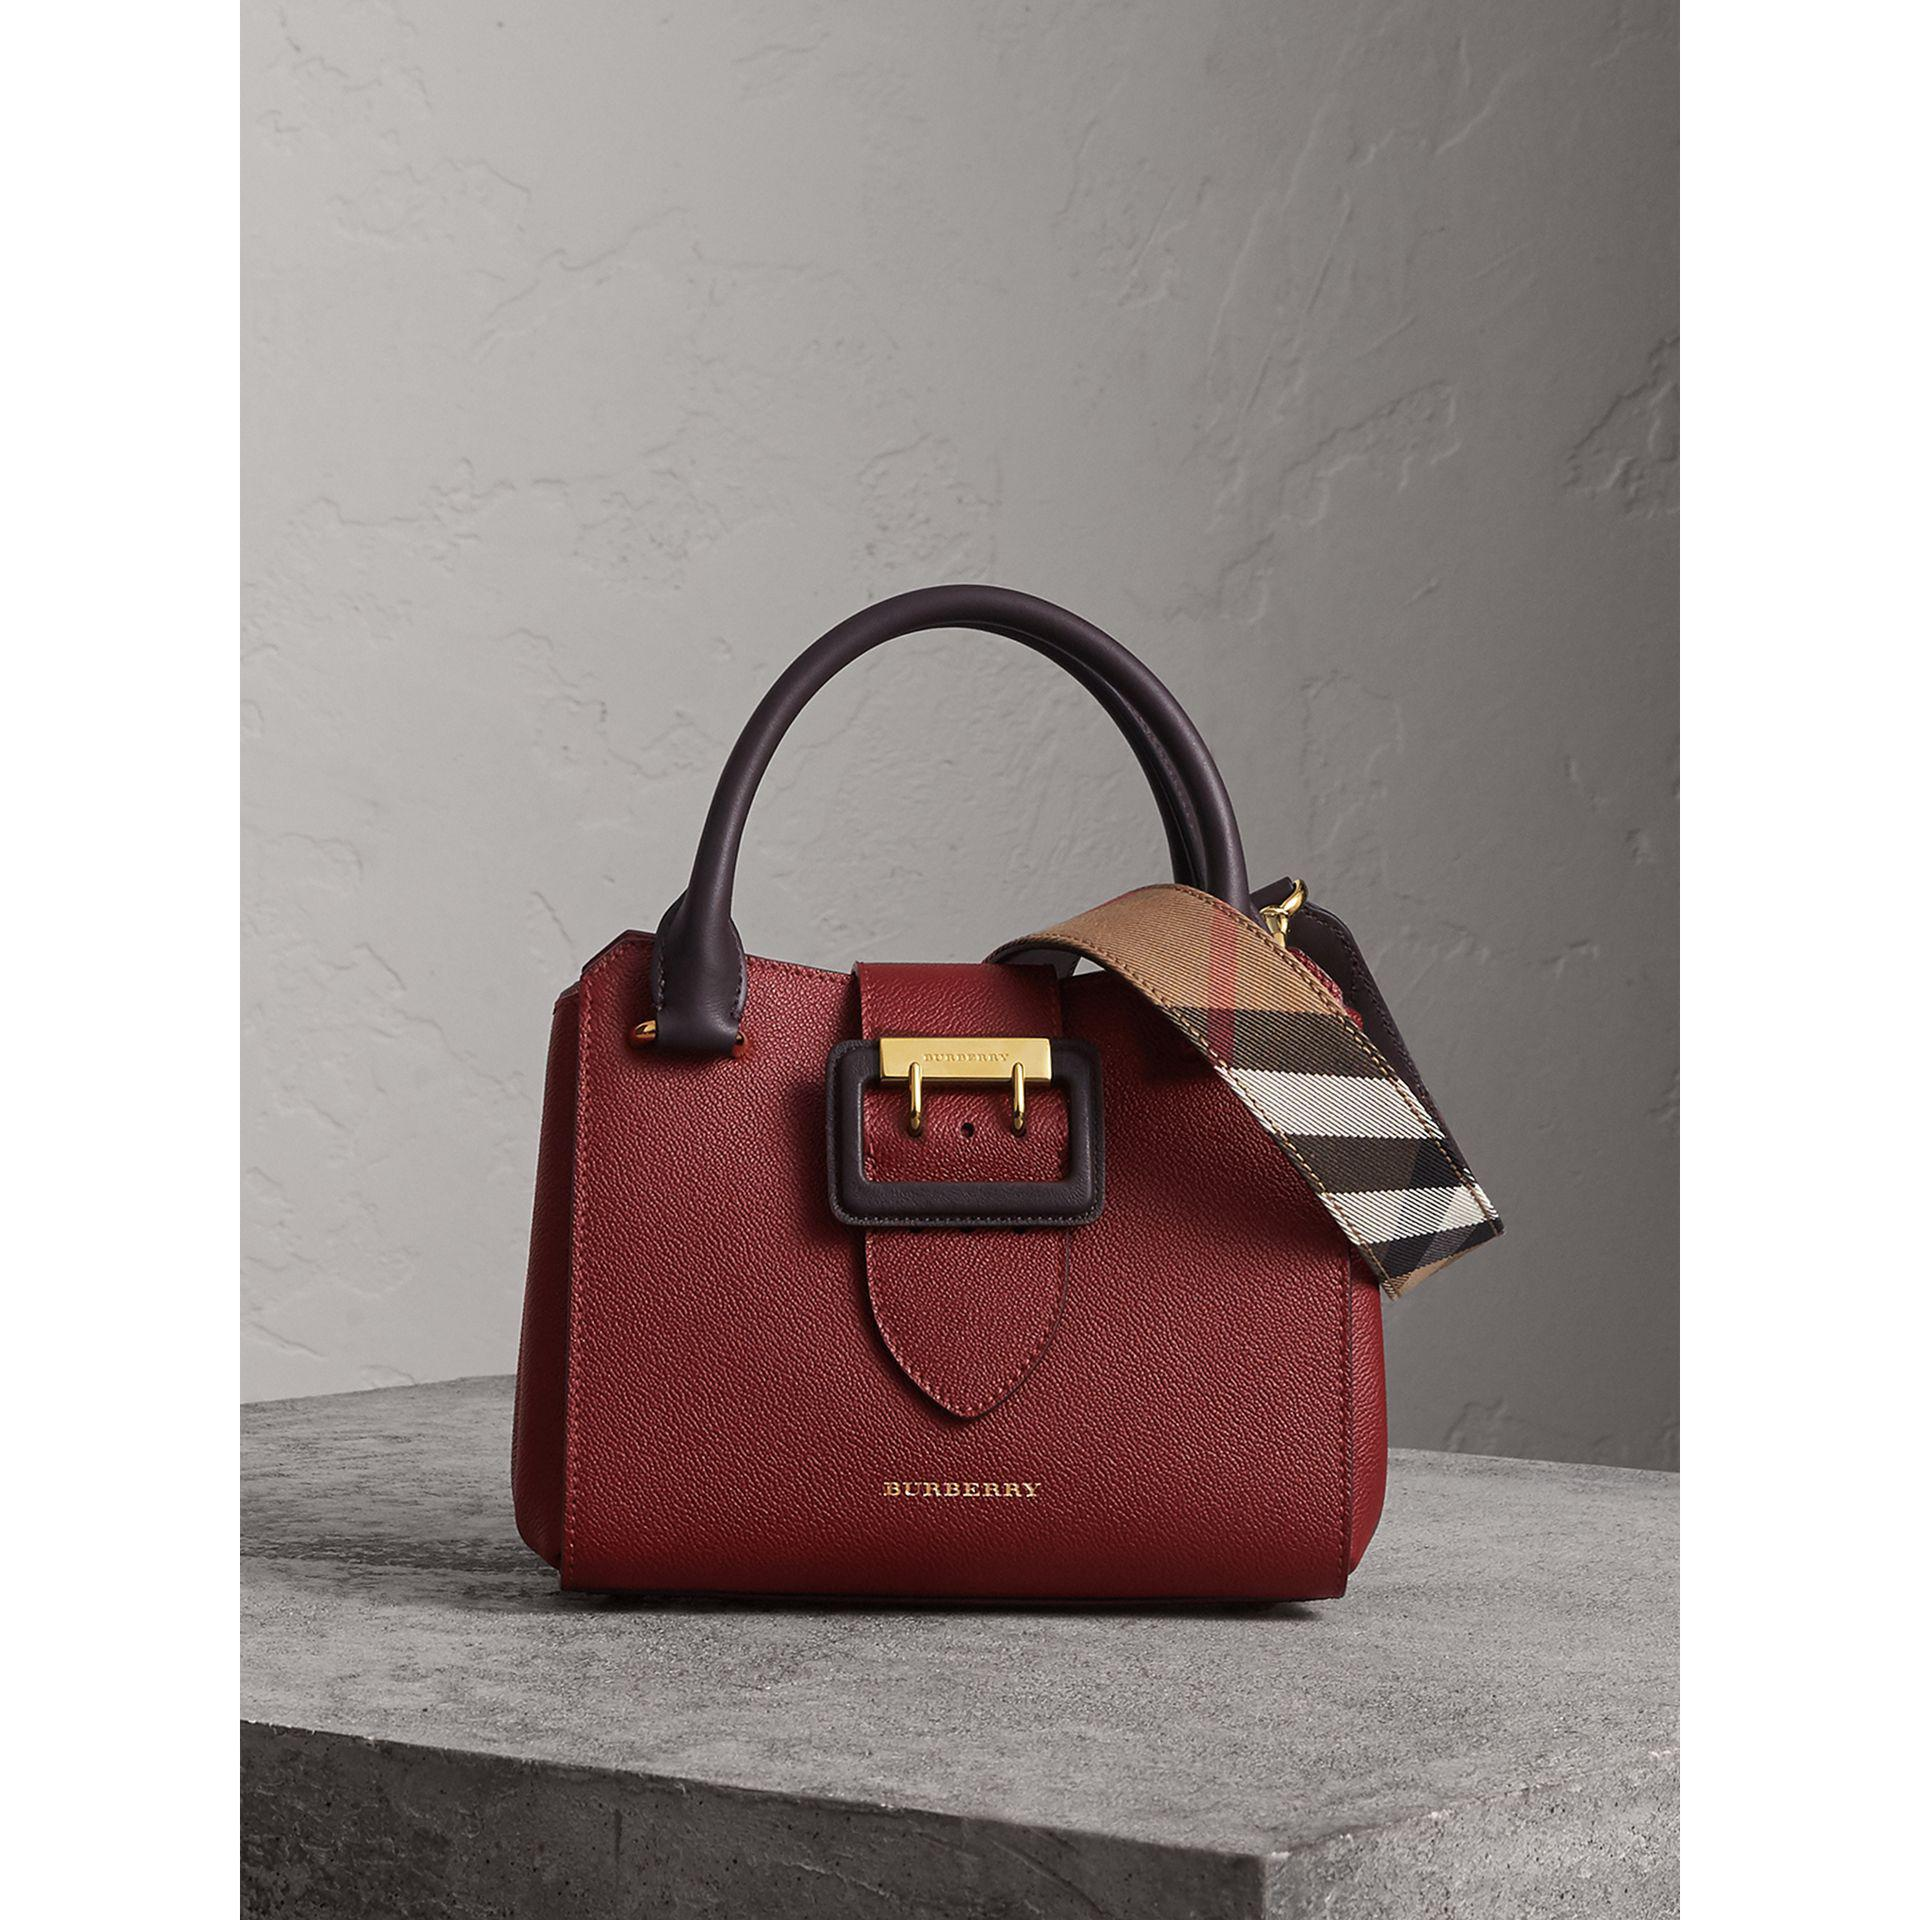 b878eeb6cda5 Burberry The Small Buckle Tote In Two-tone Leather - Lyst